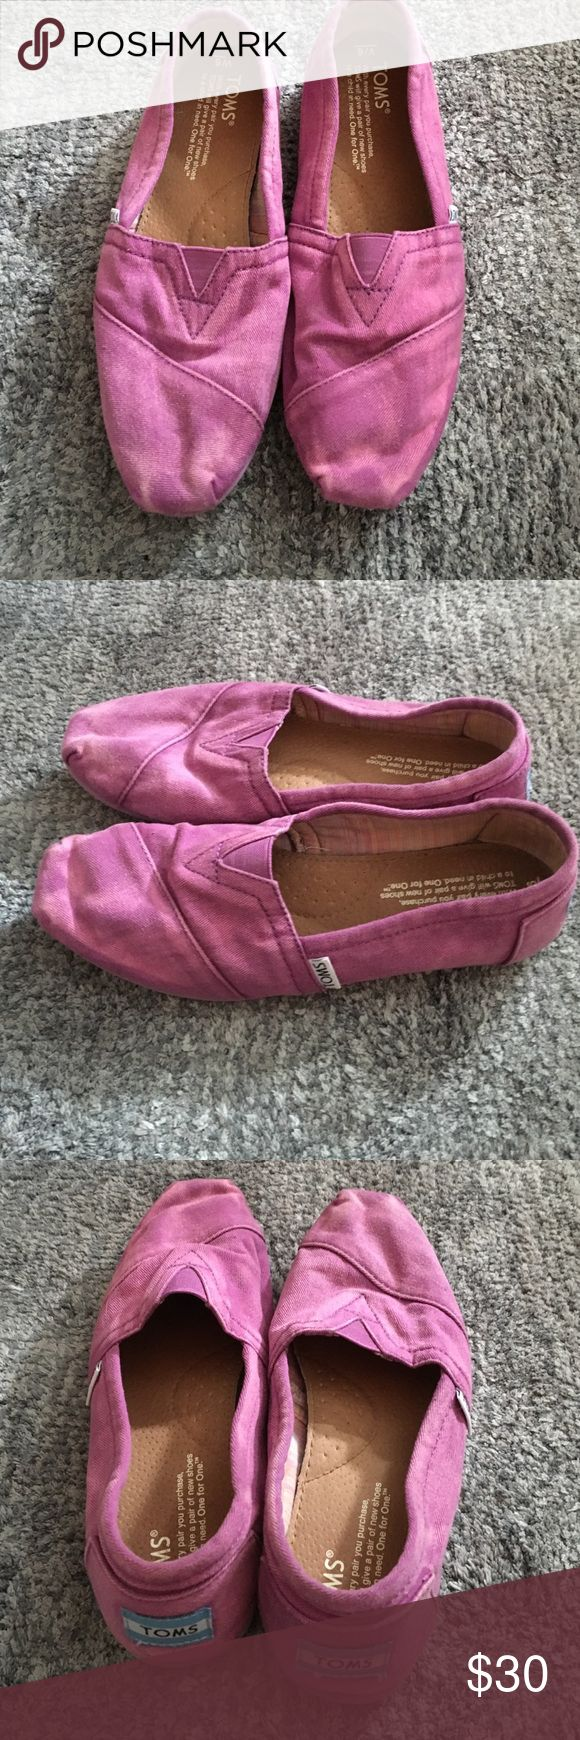 Toms flats purple vintage washed Toms. only worn once or twice. in great condition. size 6 TOMS Shoes Flats & Loafers